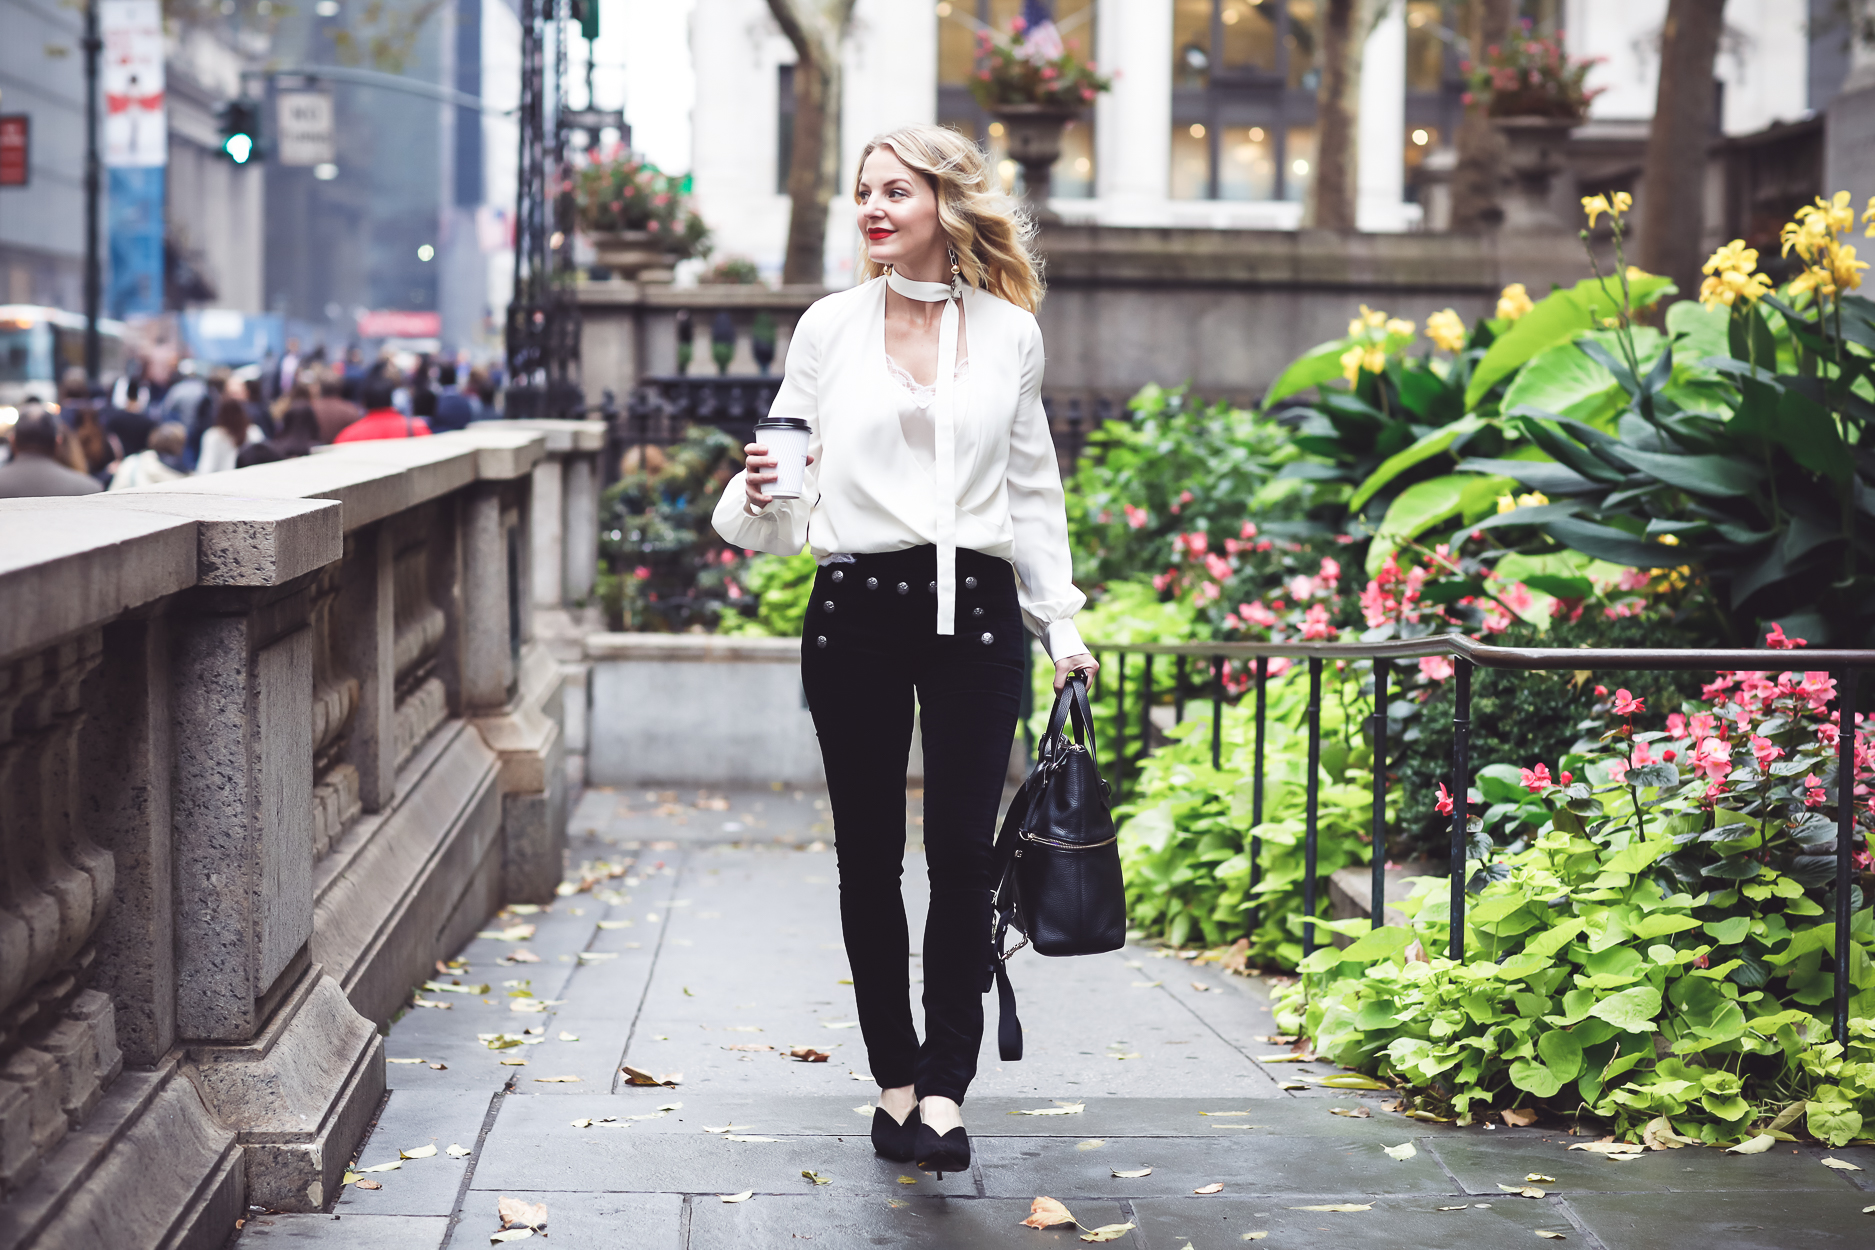 Blonde woman wearing white choker blouse by Alexis, Black velvet veronica beard skinny pants with sailor buttons and black mules by who what wear carrying a Henri Bendel bag in Bryant Park in NYC